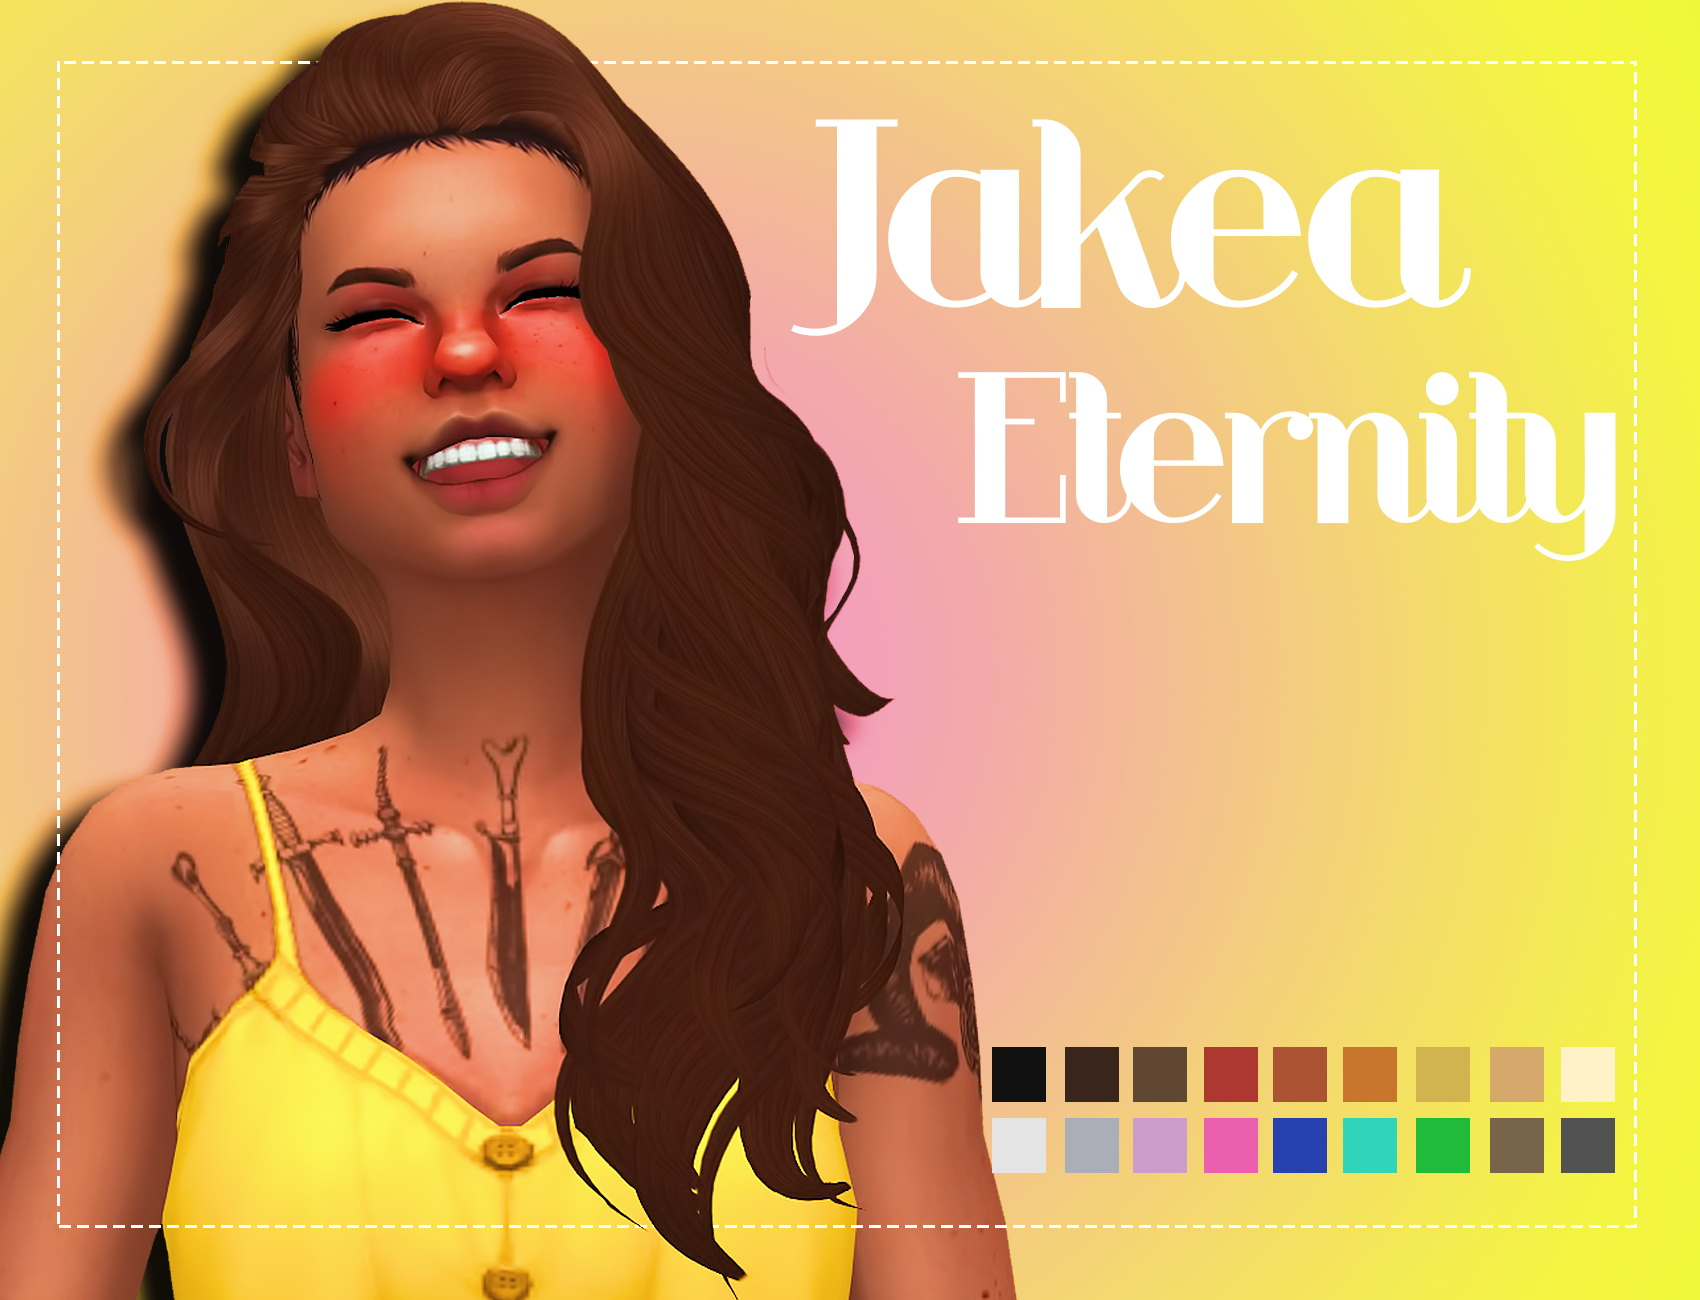 Sims 4 Hairs Simsworkshop Jakea Eternity Clayified Byb